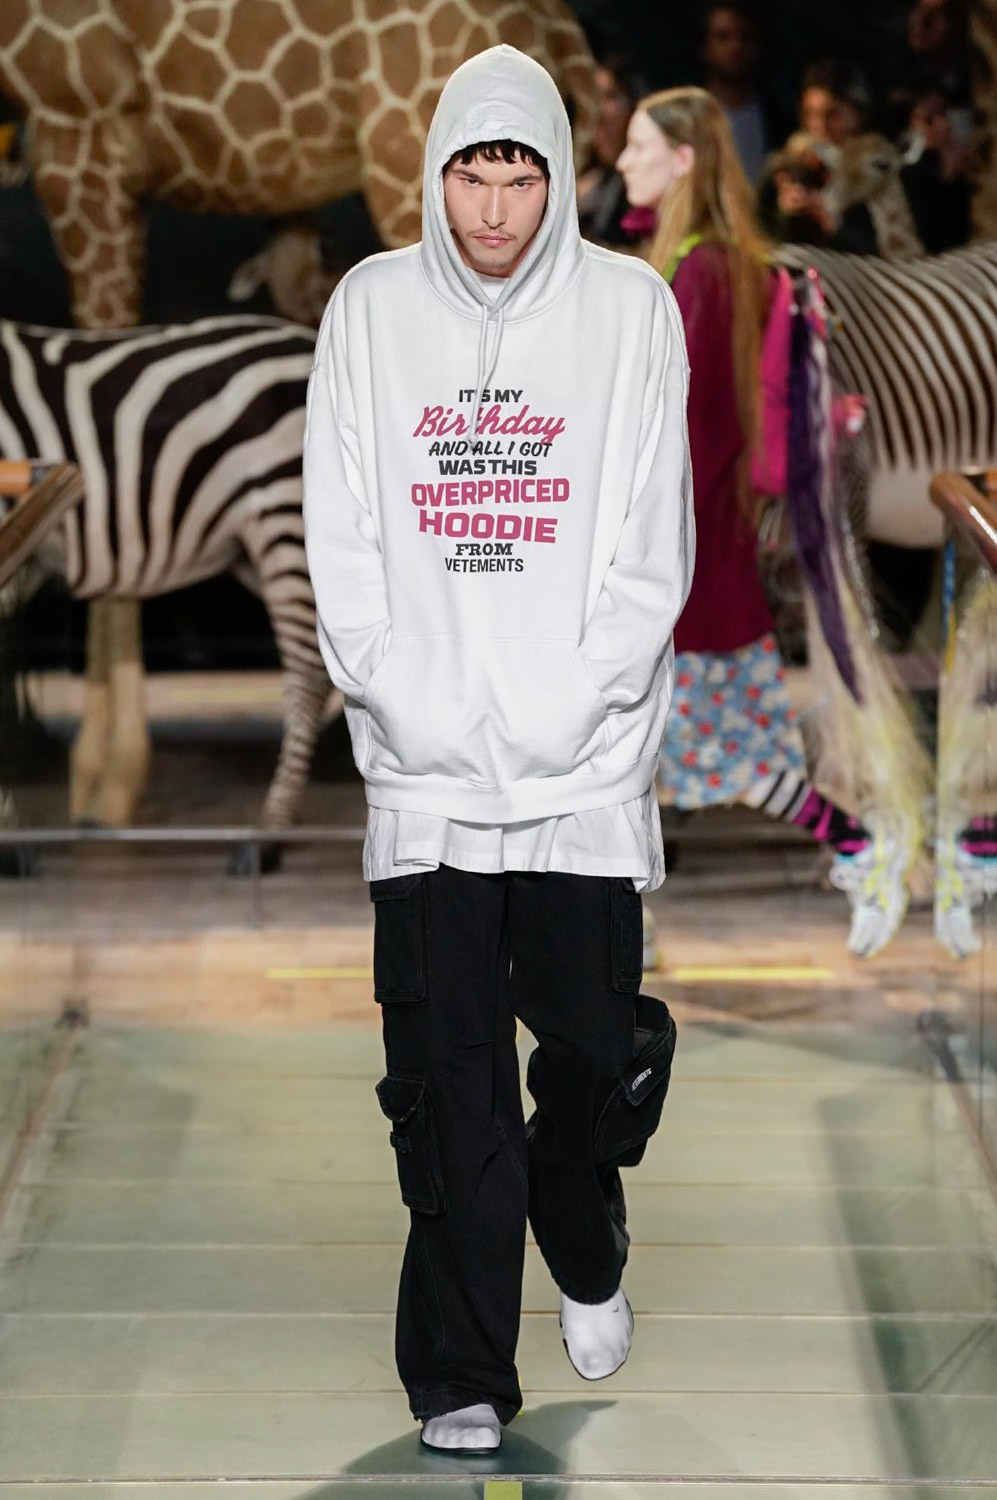 https---vetements-aw19-dtf-magazine.com-image-2019-01-vetements-fall-winter-2019-paris-fashion-week-20